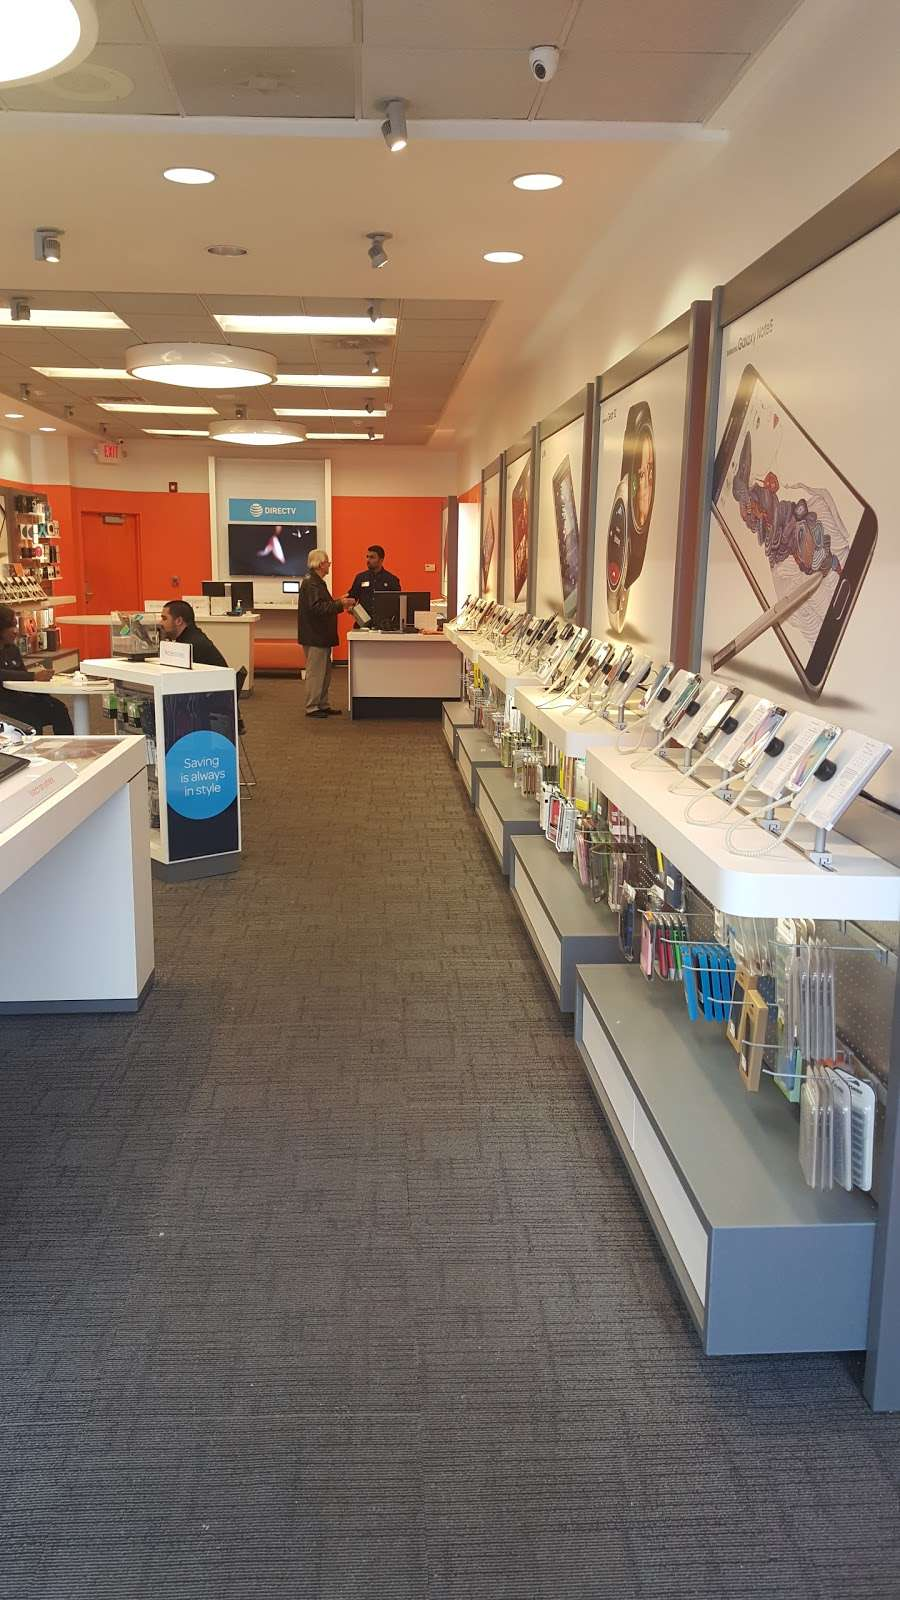 AT&T Store - electronics store  | Photo 3 of 9 | Address: 843 Bronx River Rd, Yonkers, NY 10708, USA | Phone: (914) 226-8240